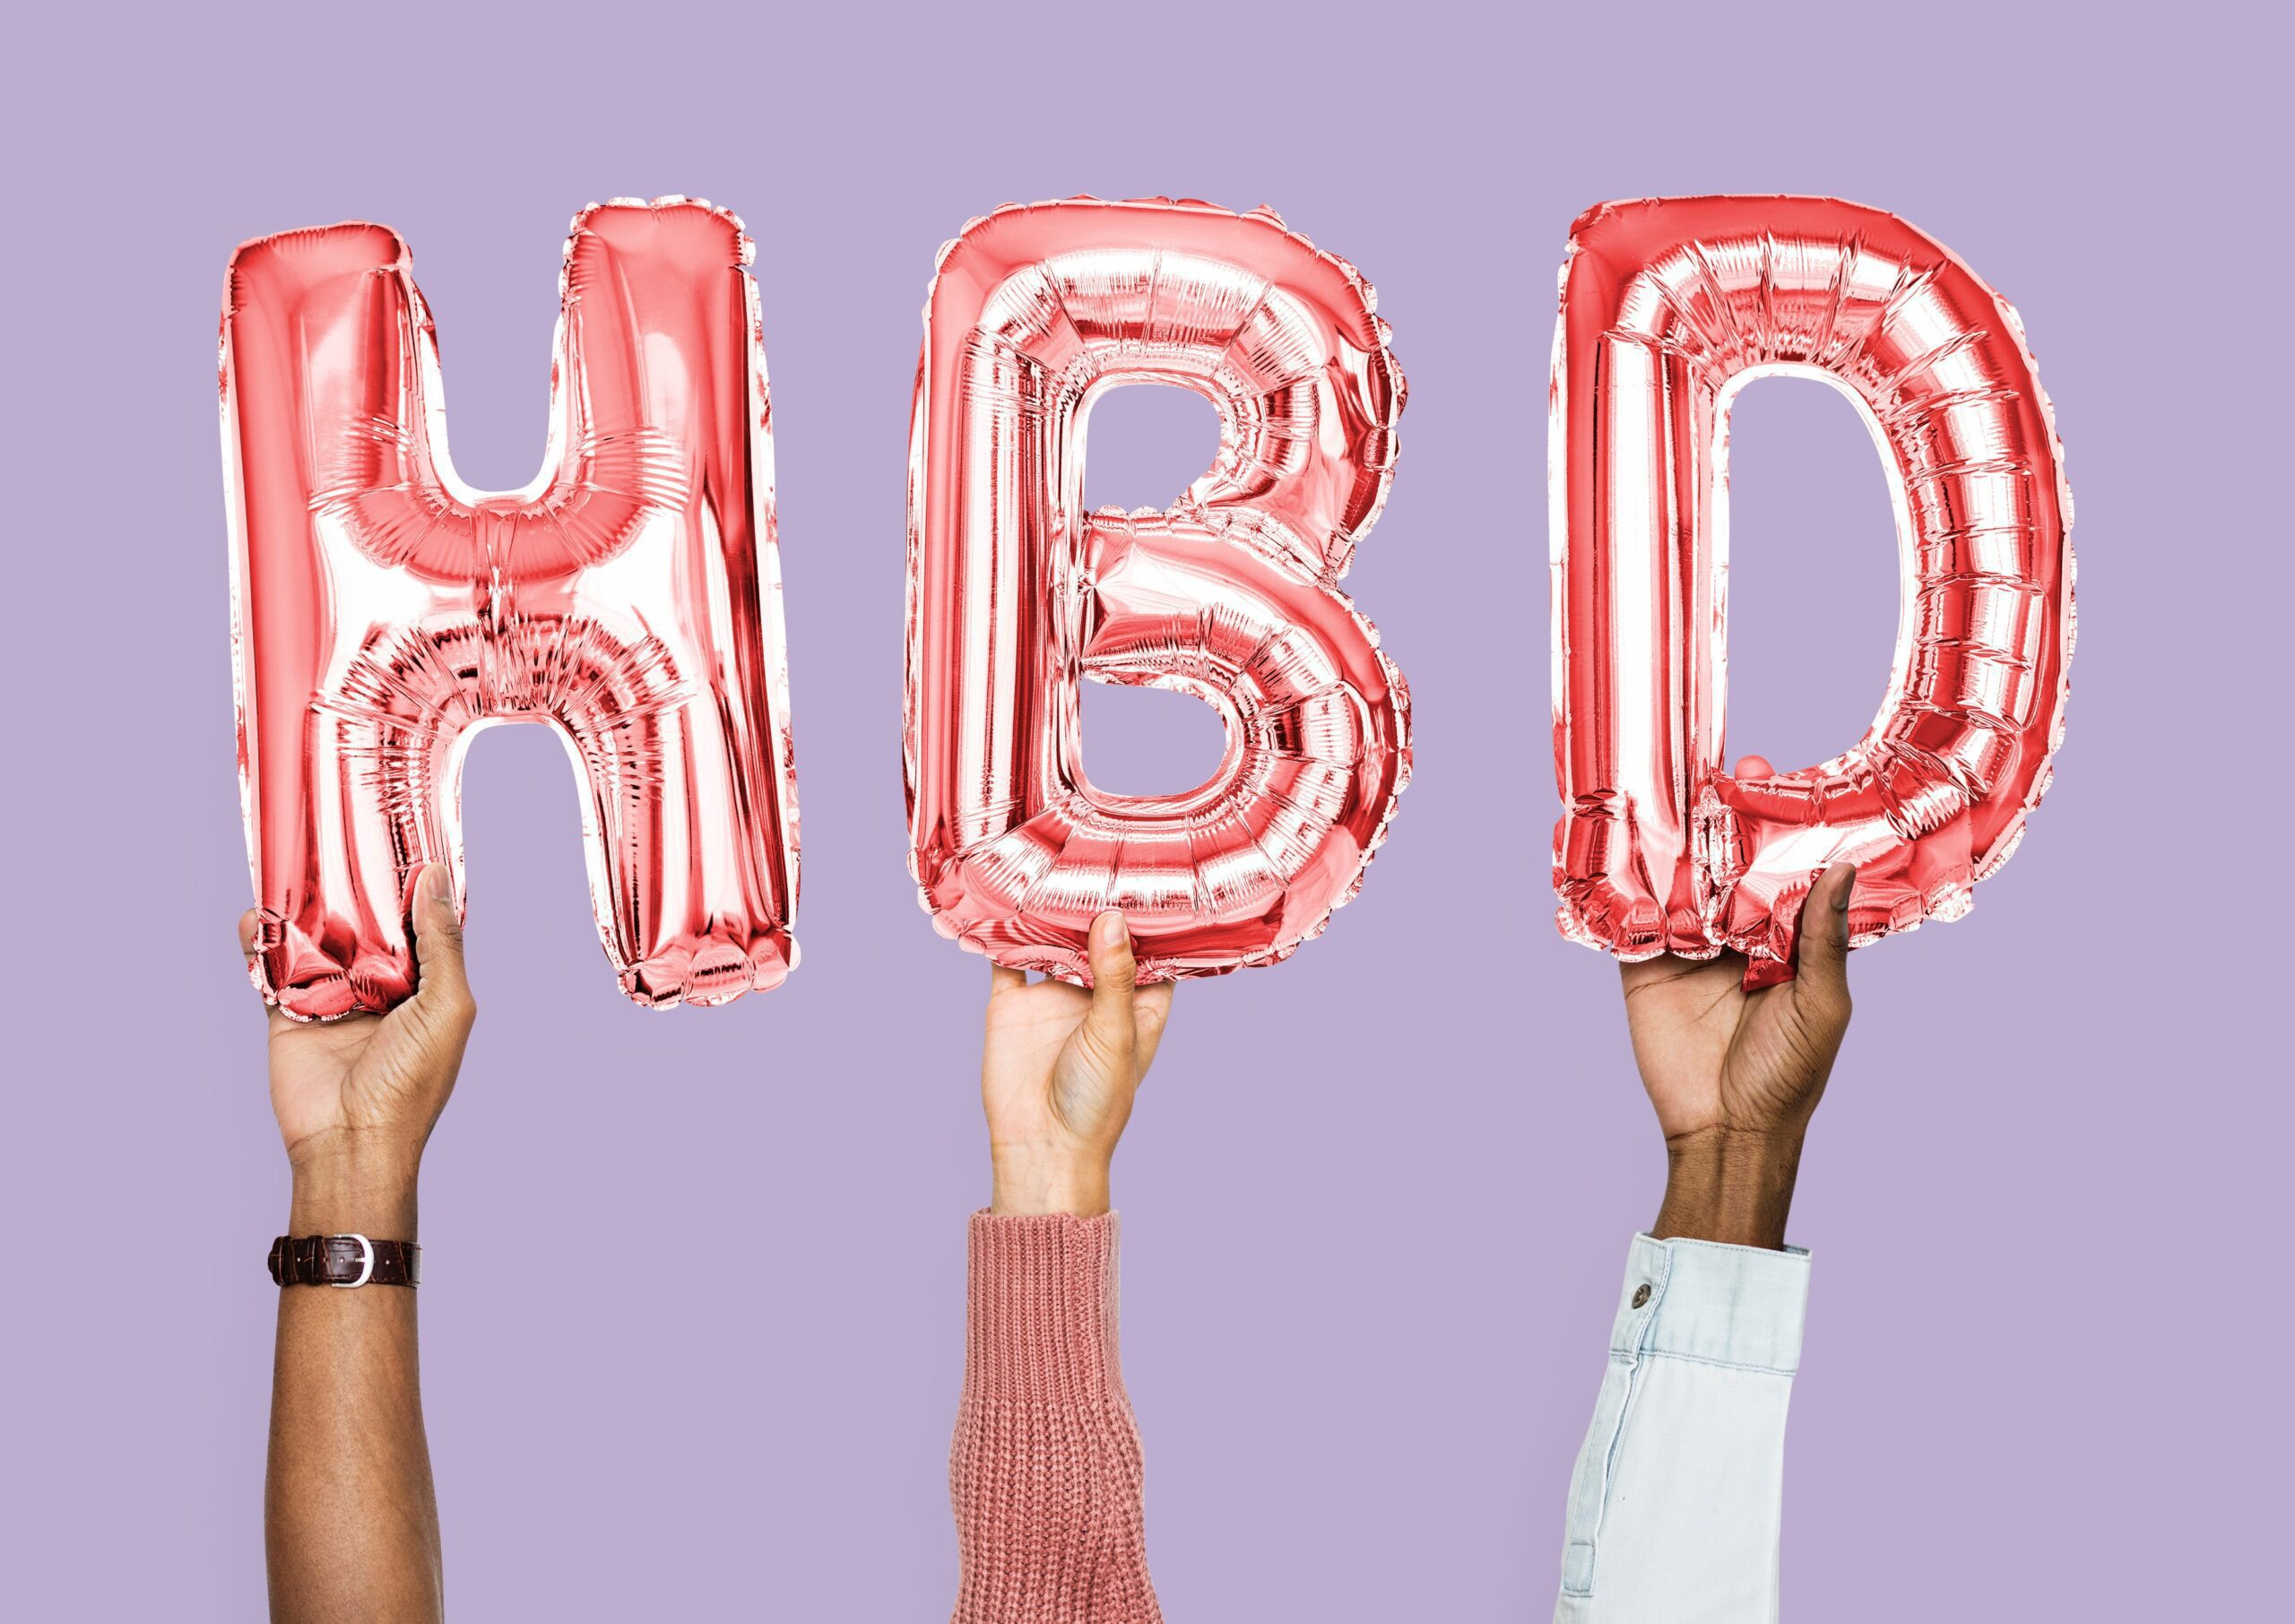 When coming up with unique birthday party ideas for teenagers, sometimes the goofier the better! Check out these Top Birthday Party Ideas! #partyplanning #birthdaypartyideas